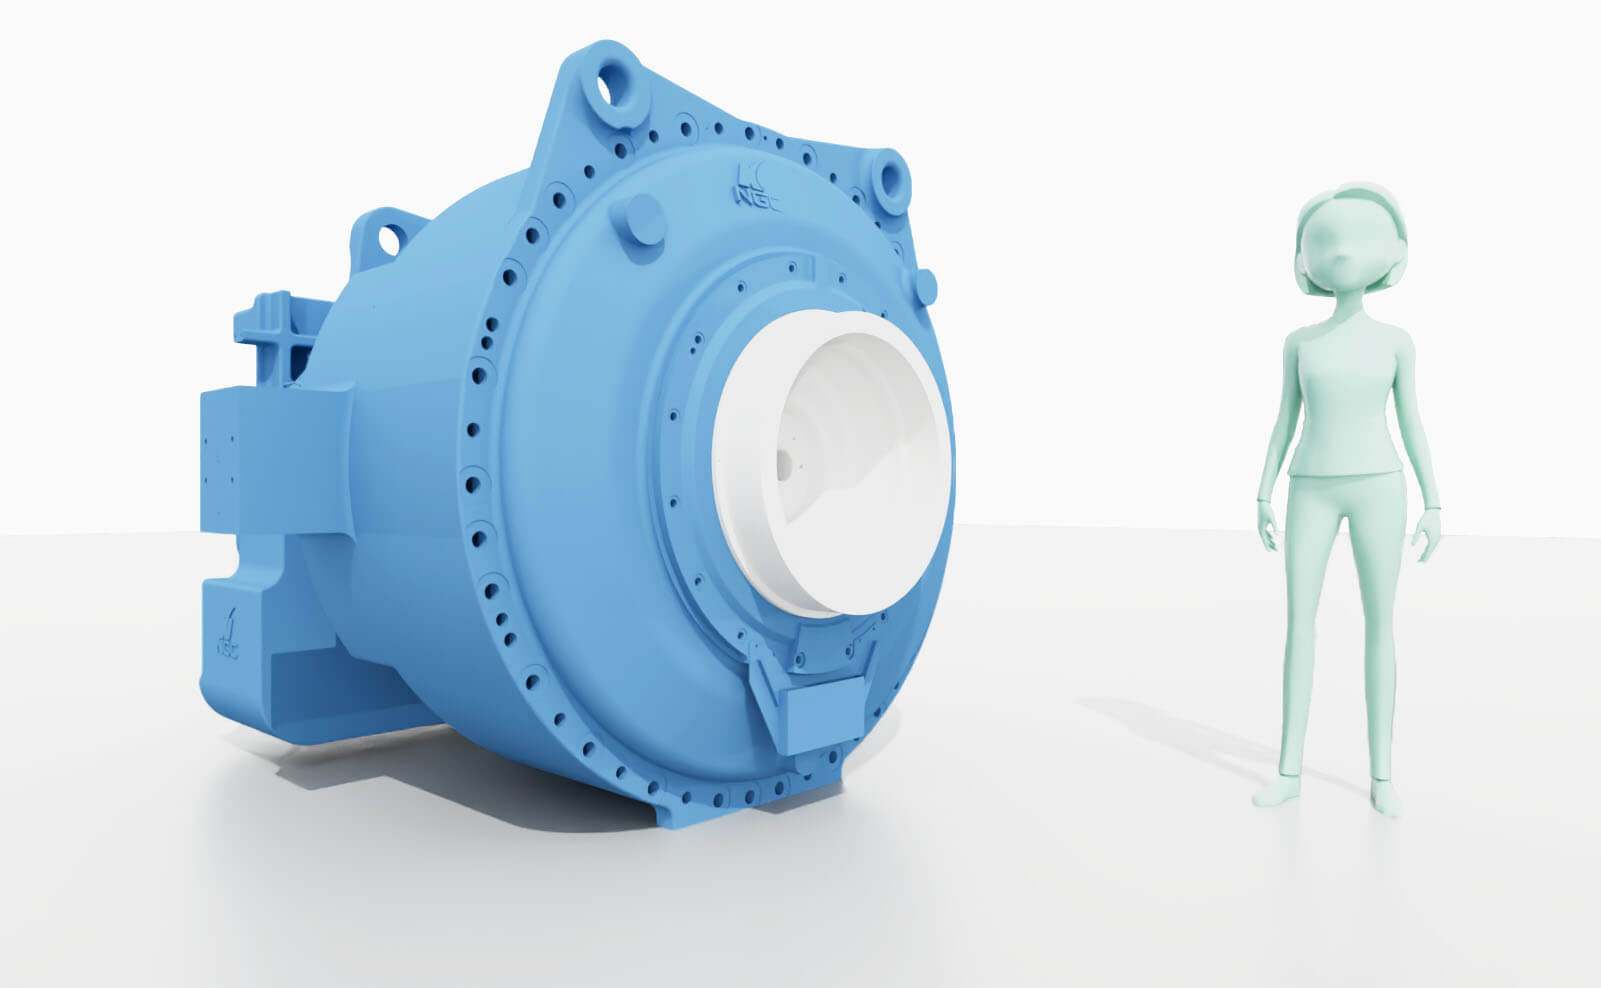 Comparison of NGC's 4 MW class gearbox with a human being